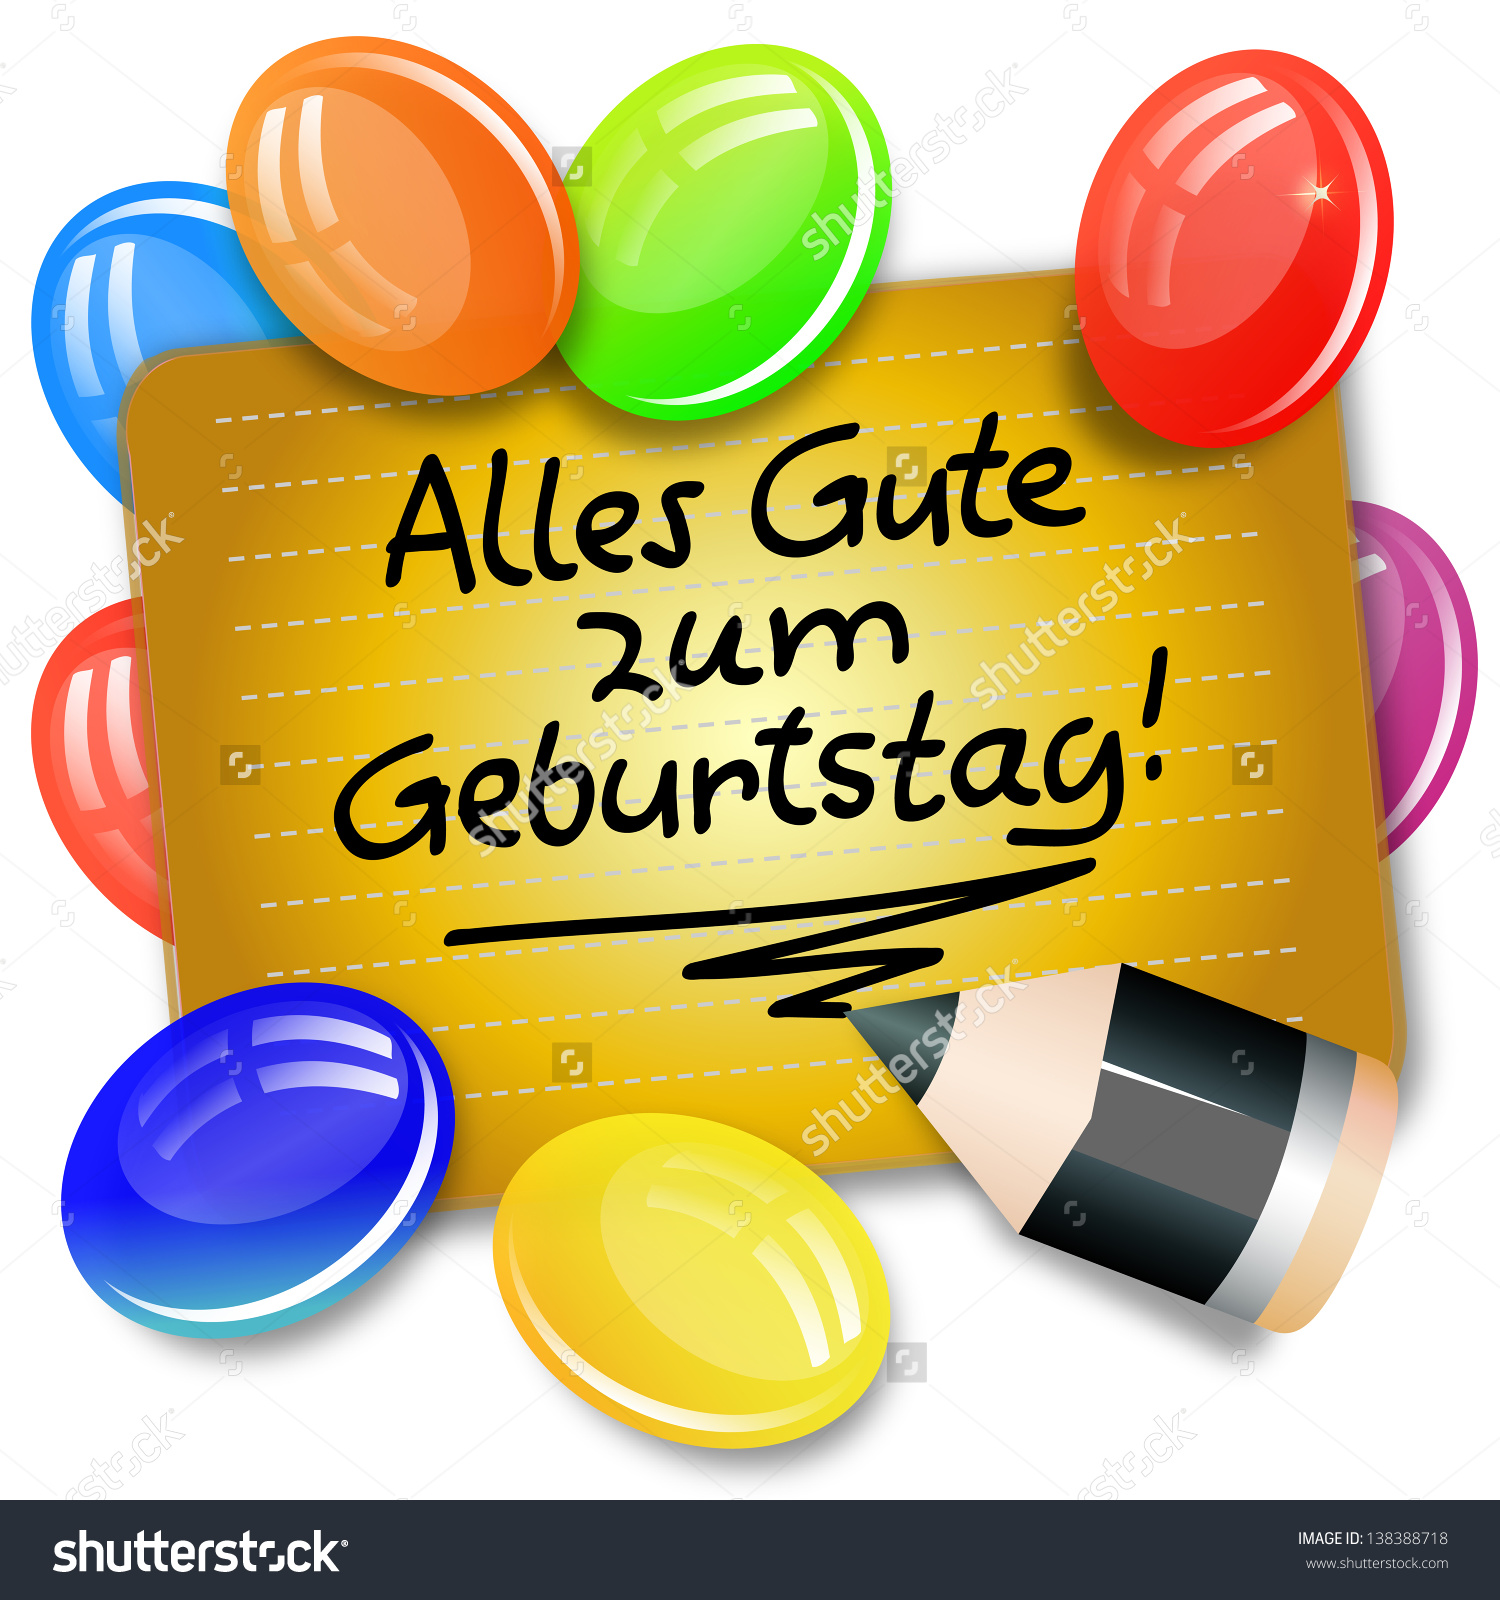 Clipart alles gute zum geburtstag clip black and white library Card Handwritten Note German Language Alles Stock Illustration ... clip black and white library